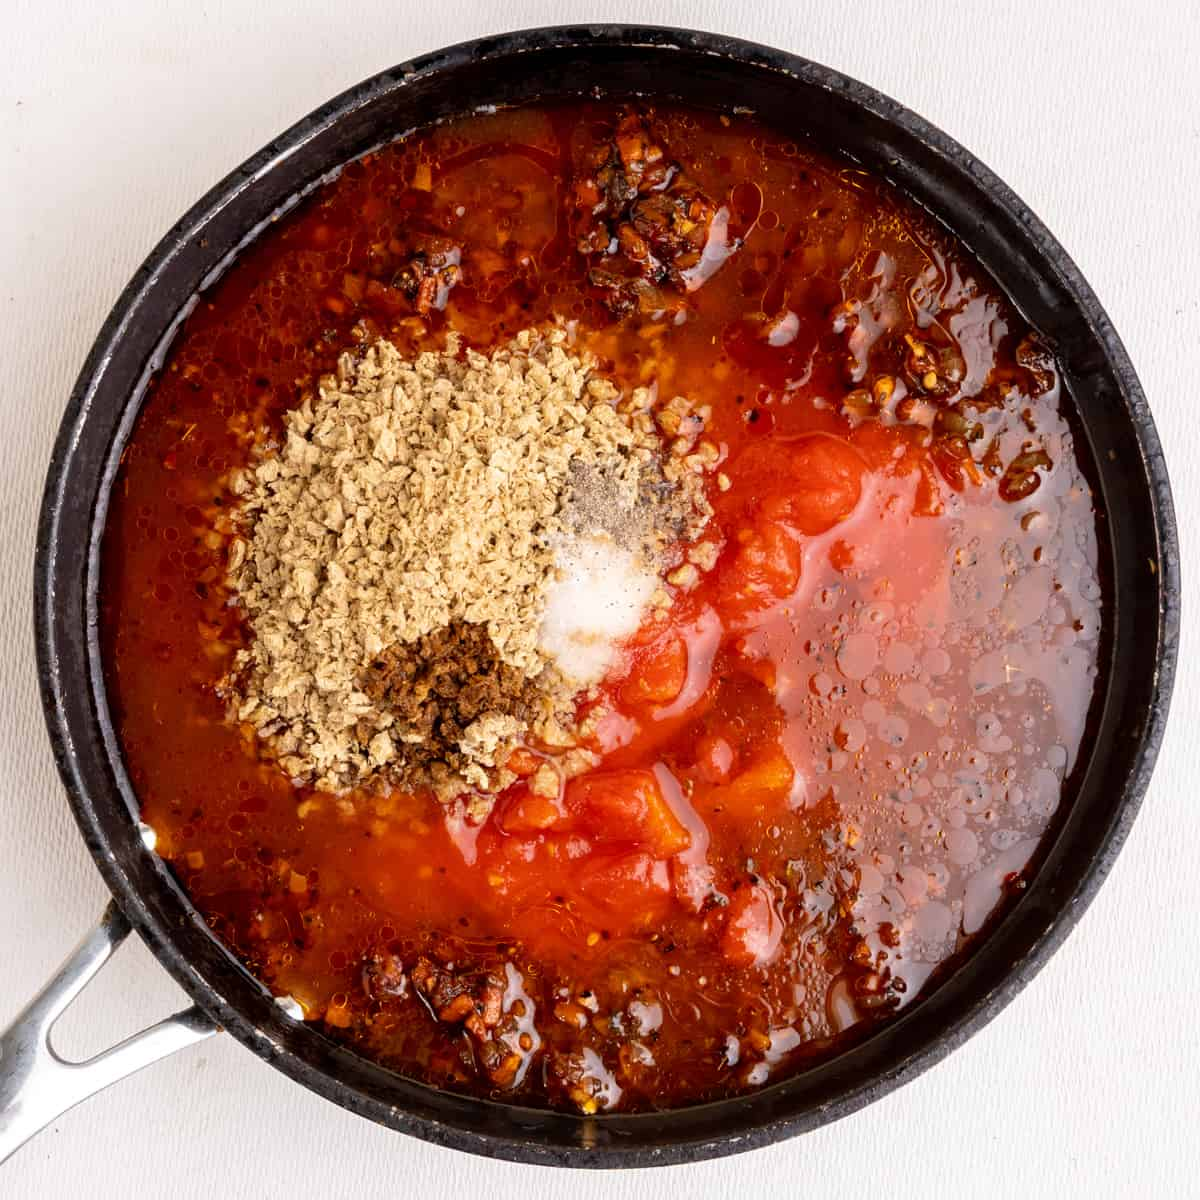 The dried soya mince, chopped tomatoes, soy sauce, salt and pepper and water are added to the reddish brown sauteed aromatic flavour base to make the bolognese sauce.